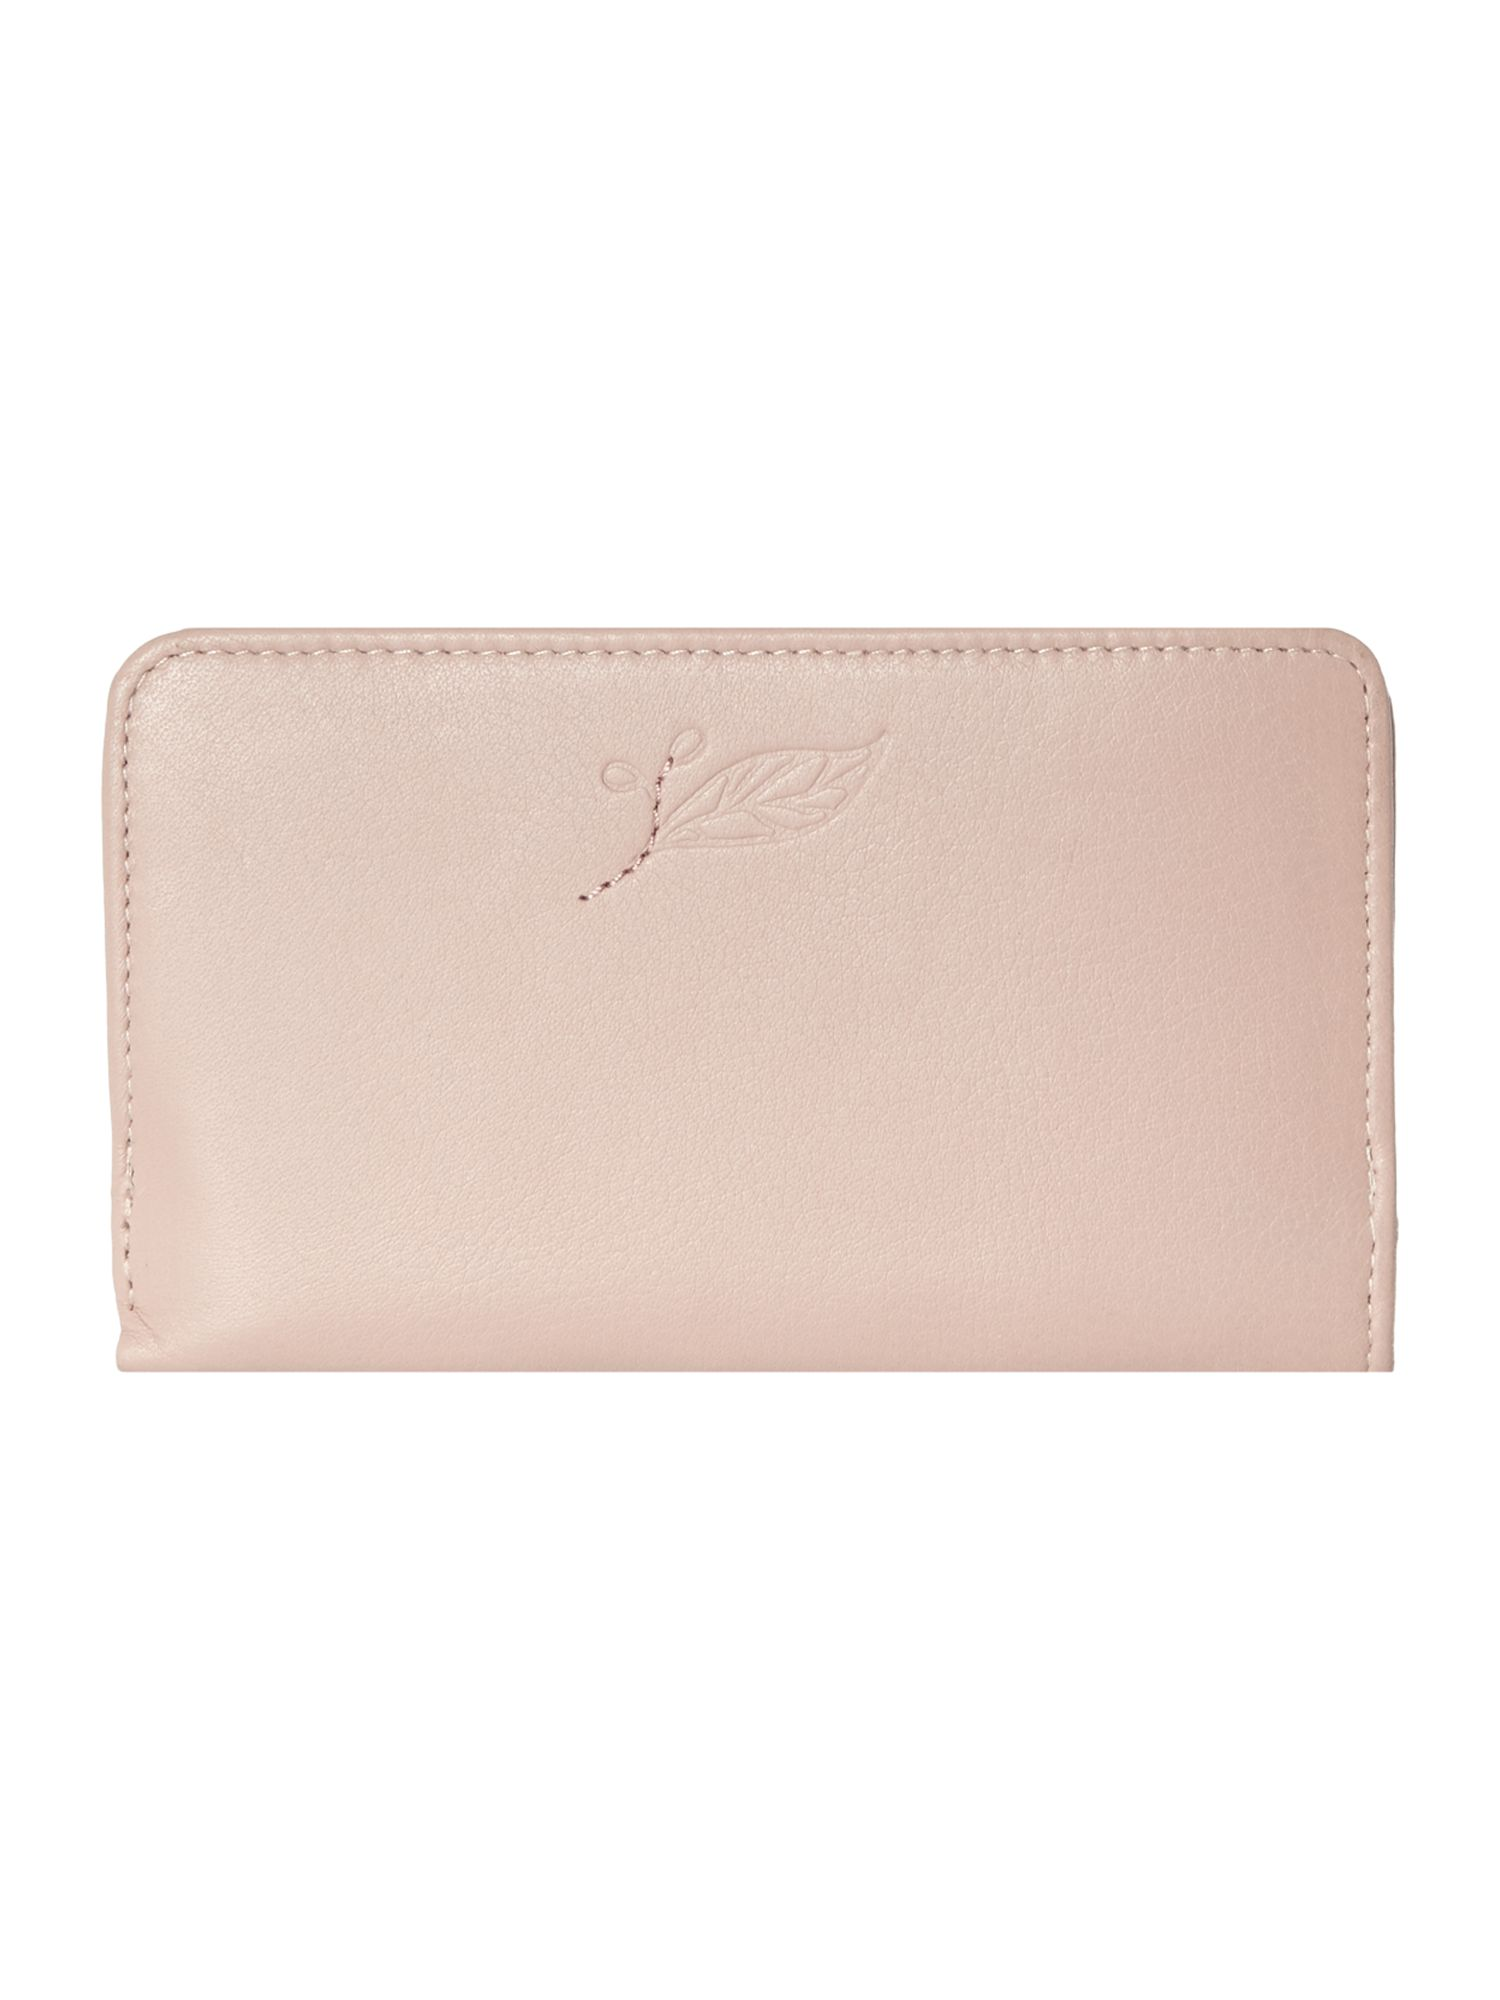 Laurel leaf pale pink medium zip around purse